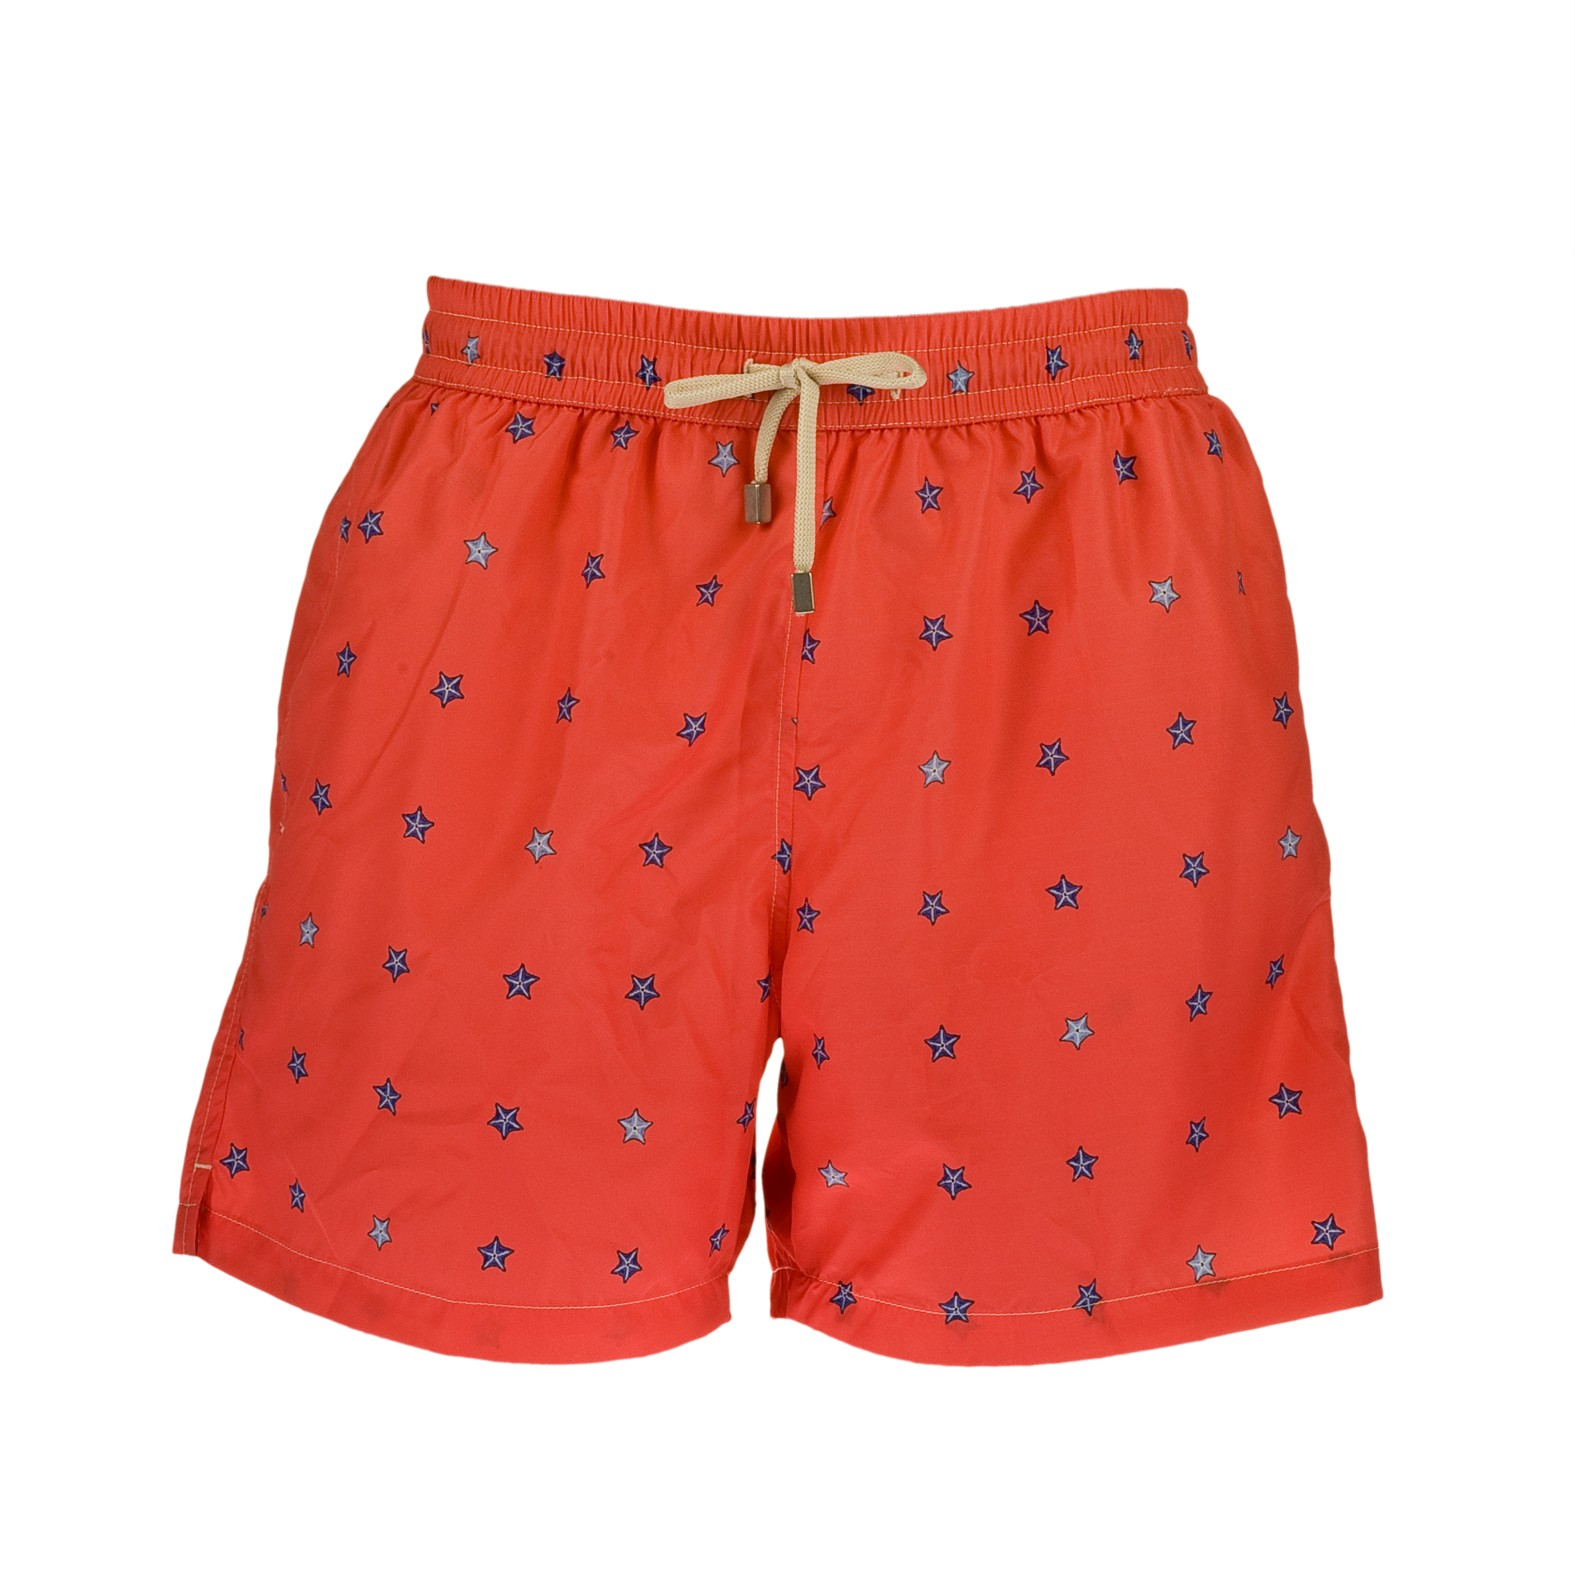 Red Fast-Dry Polyester Swimming Shorts BELSIRE MILANO Cheap High Quality Cheap Eastbay Outlet Explore Excellent tuoqN